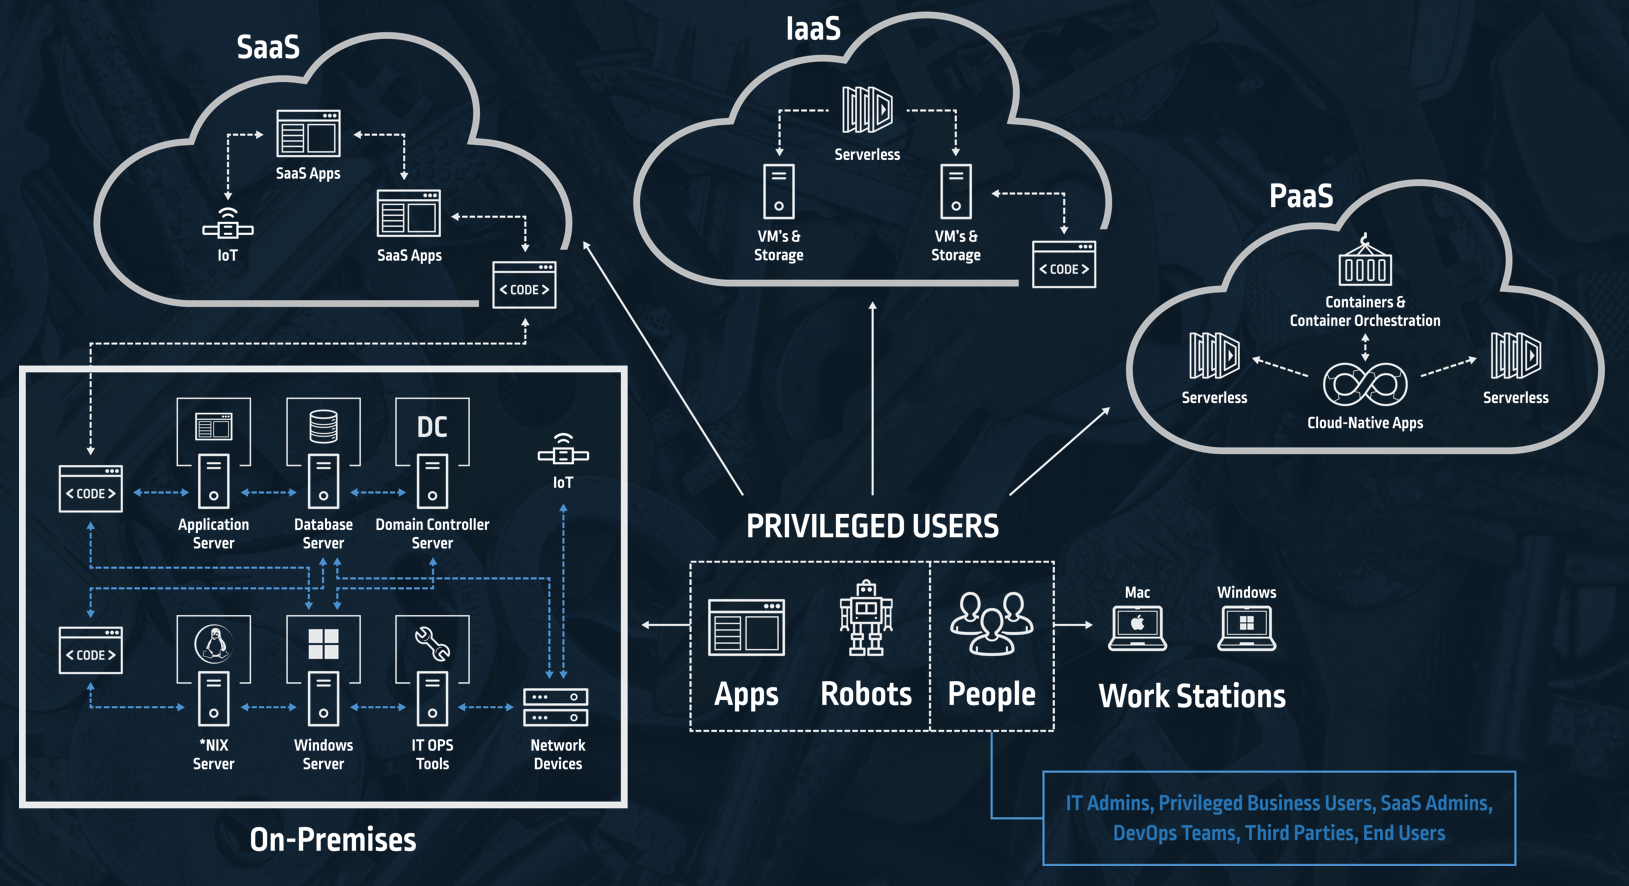 Privileged Access Management (PAM) and Hybrid Cloud Options